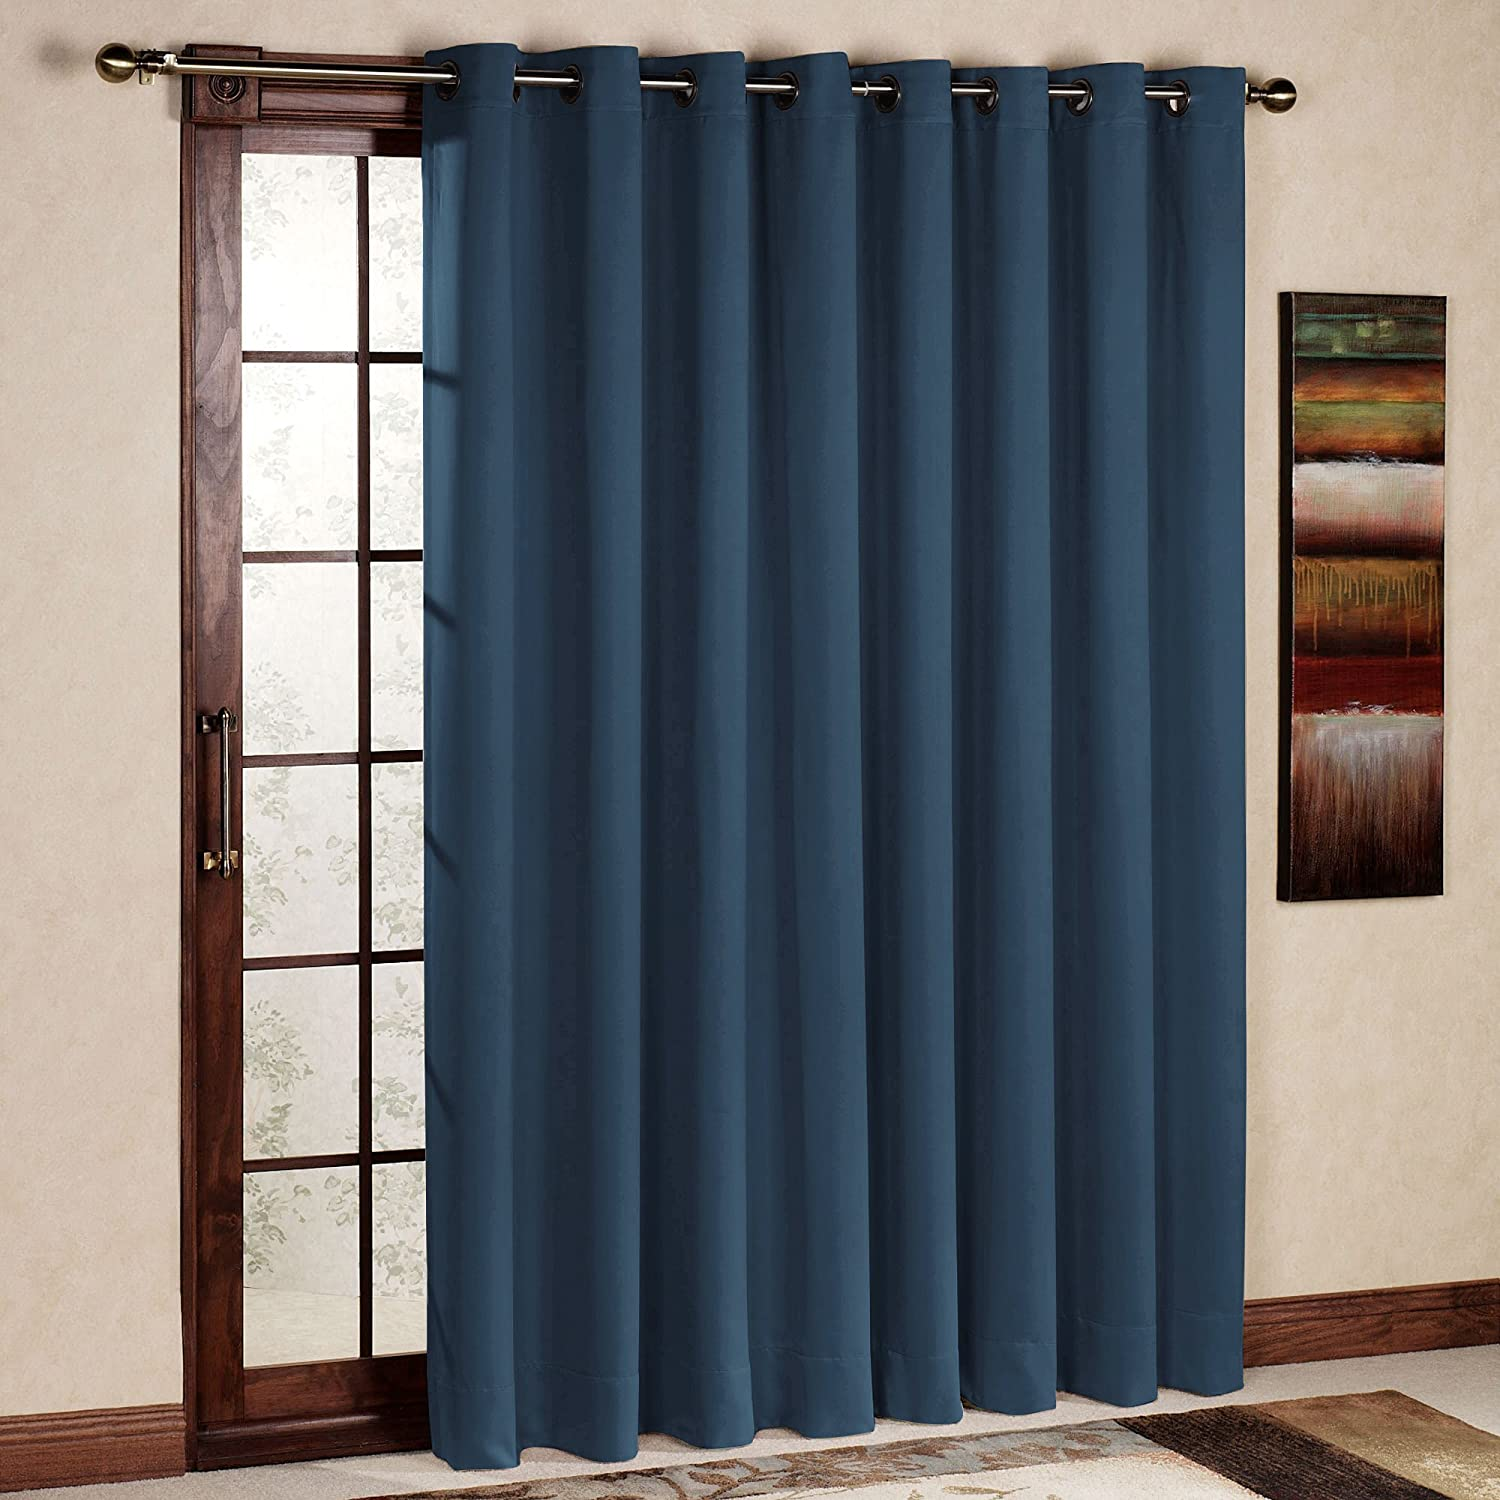 for royal inside light brilliant curtain blackout bedroom home your toddler curtains awesome stage insulated own blue